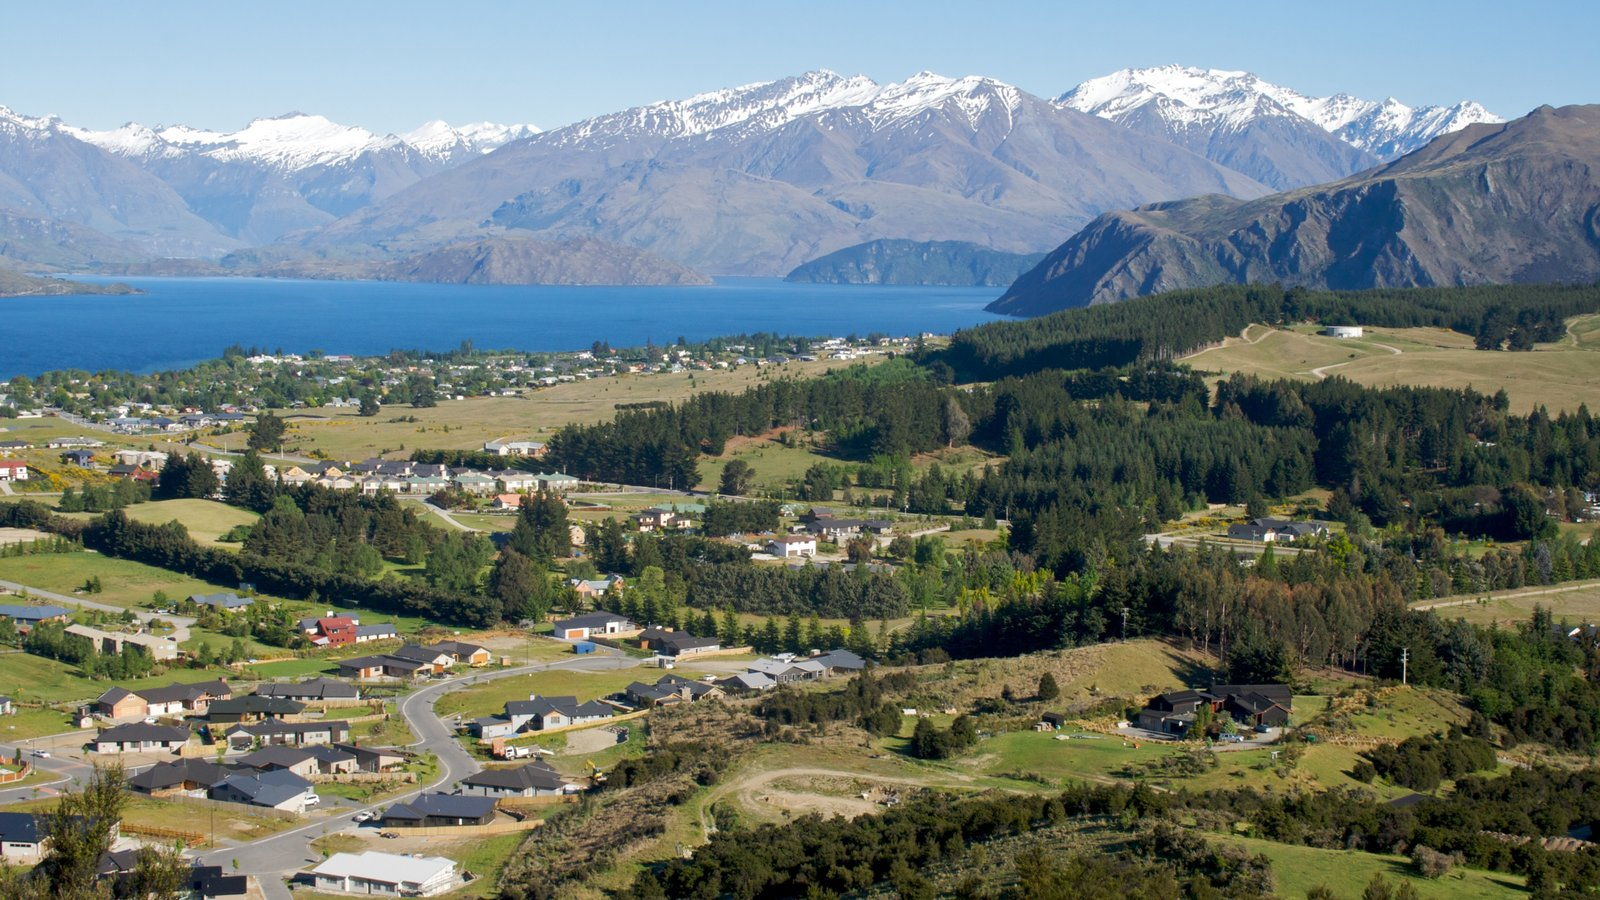 Wanaka showing landscape views, mountains and a small town or village